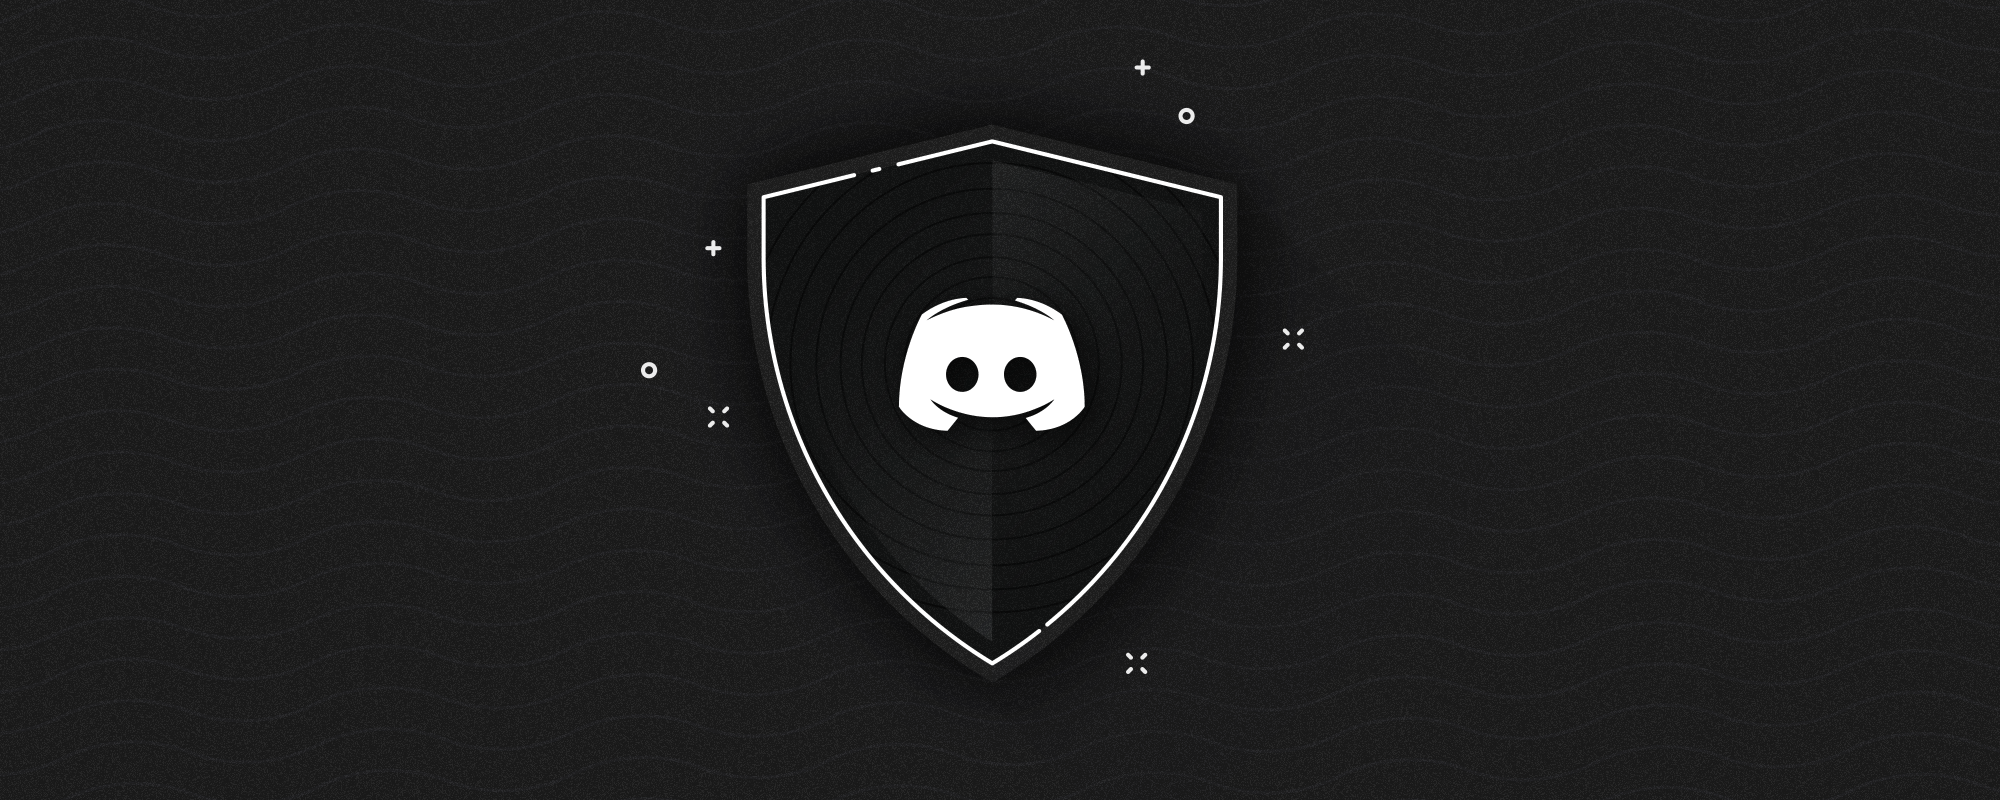 discord_security_shield.png